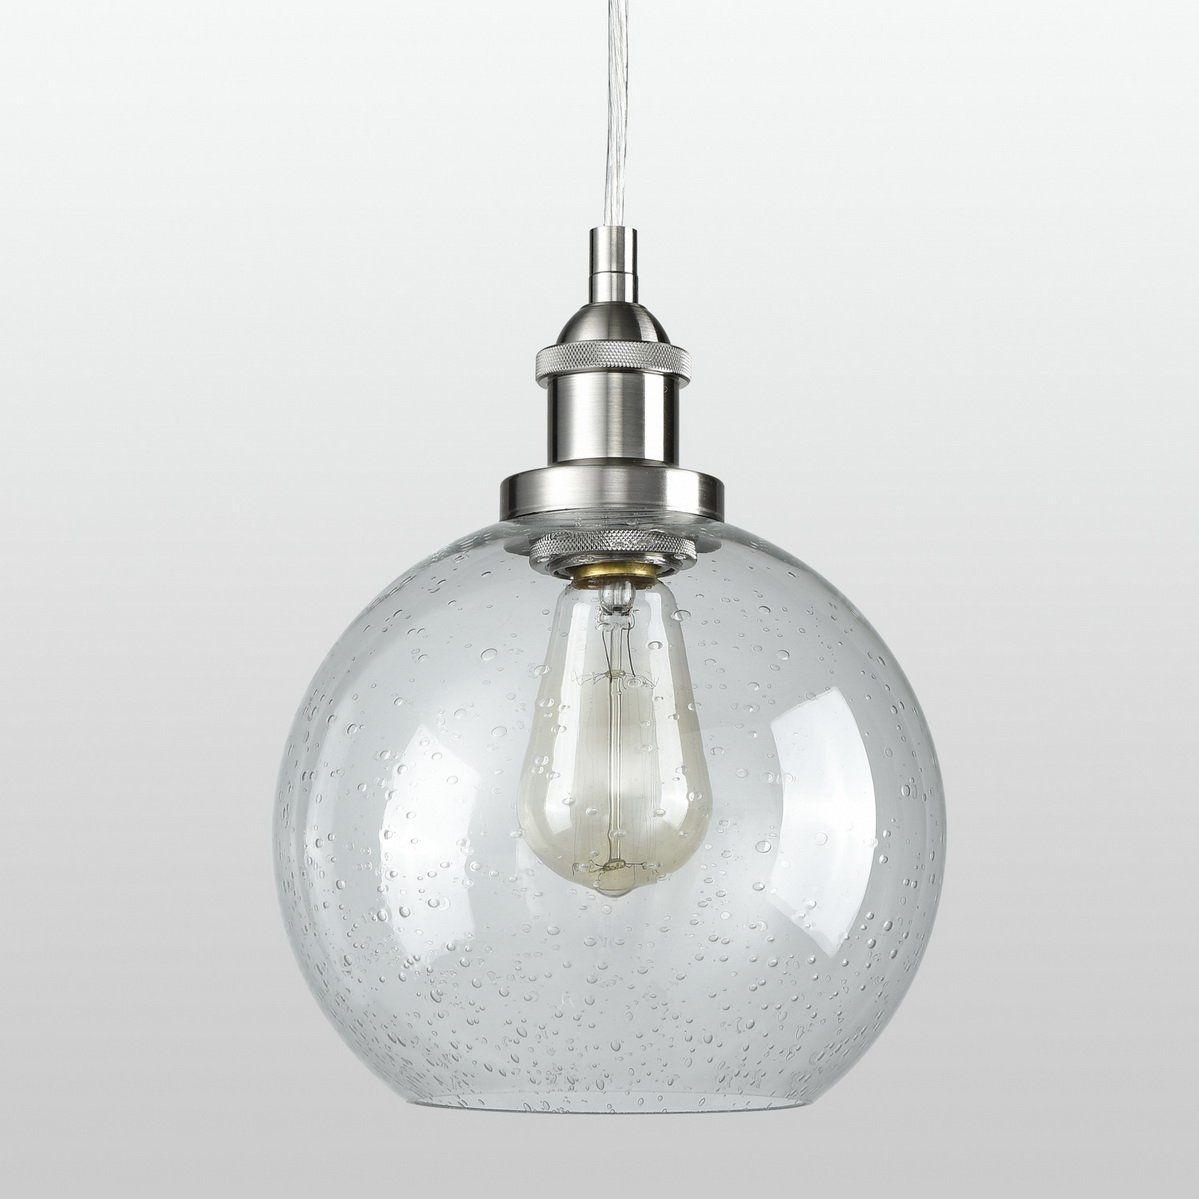 Dazhuan Contemporary Ceiling Light Seeded Glass Pendant Light